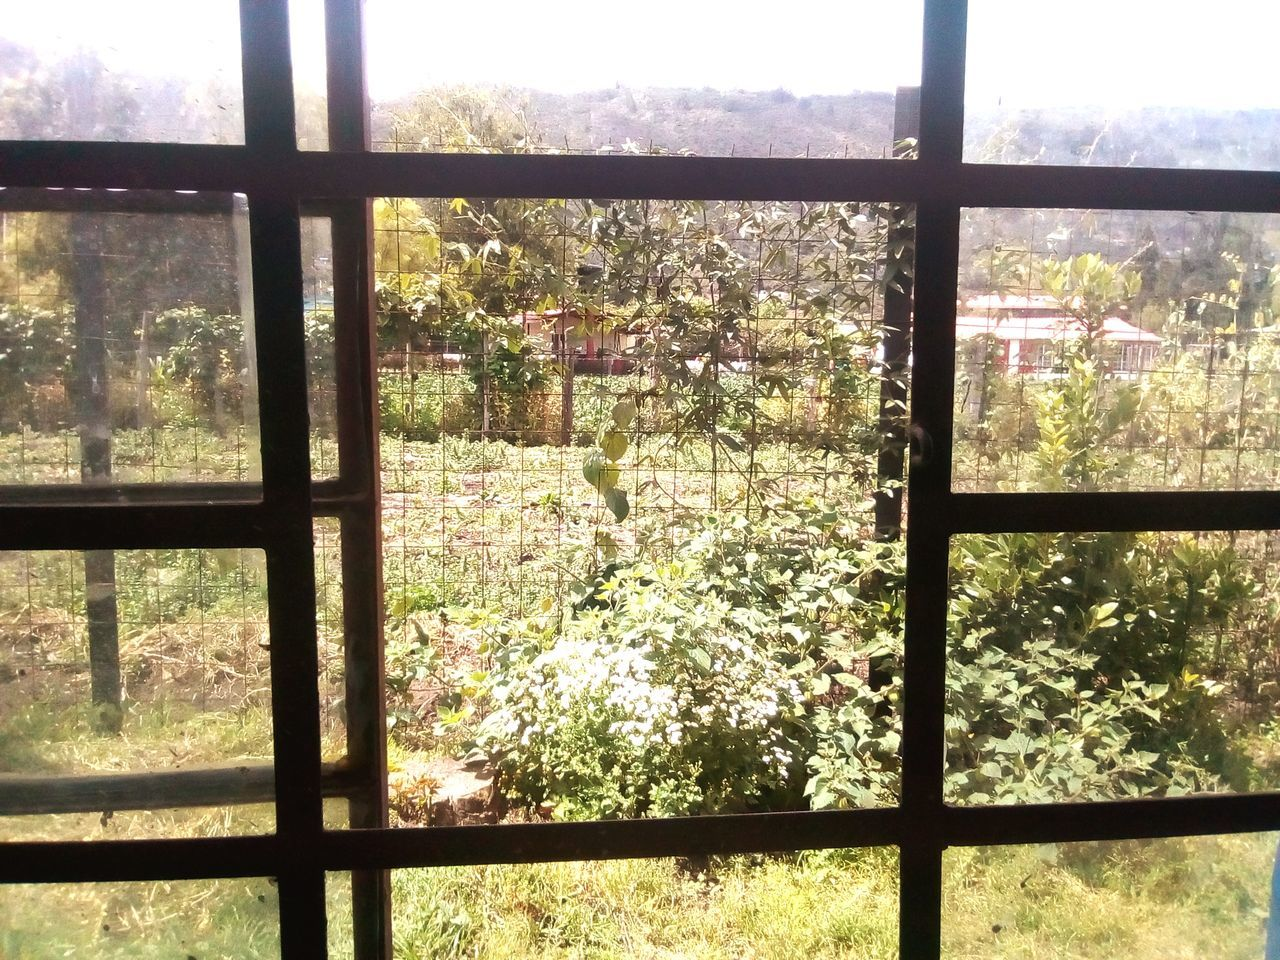 window, tree, indoors, nature, no people, day, growth, looking through window, sunlight, beauty in nature, scenics, security bar, sky, greenhouse, close-up